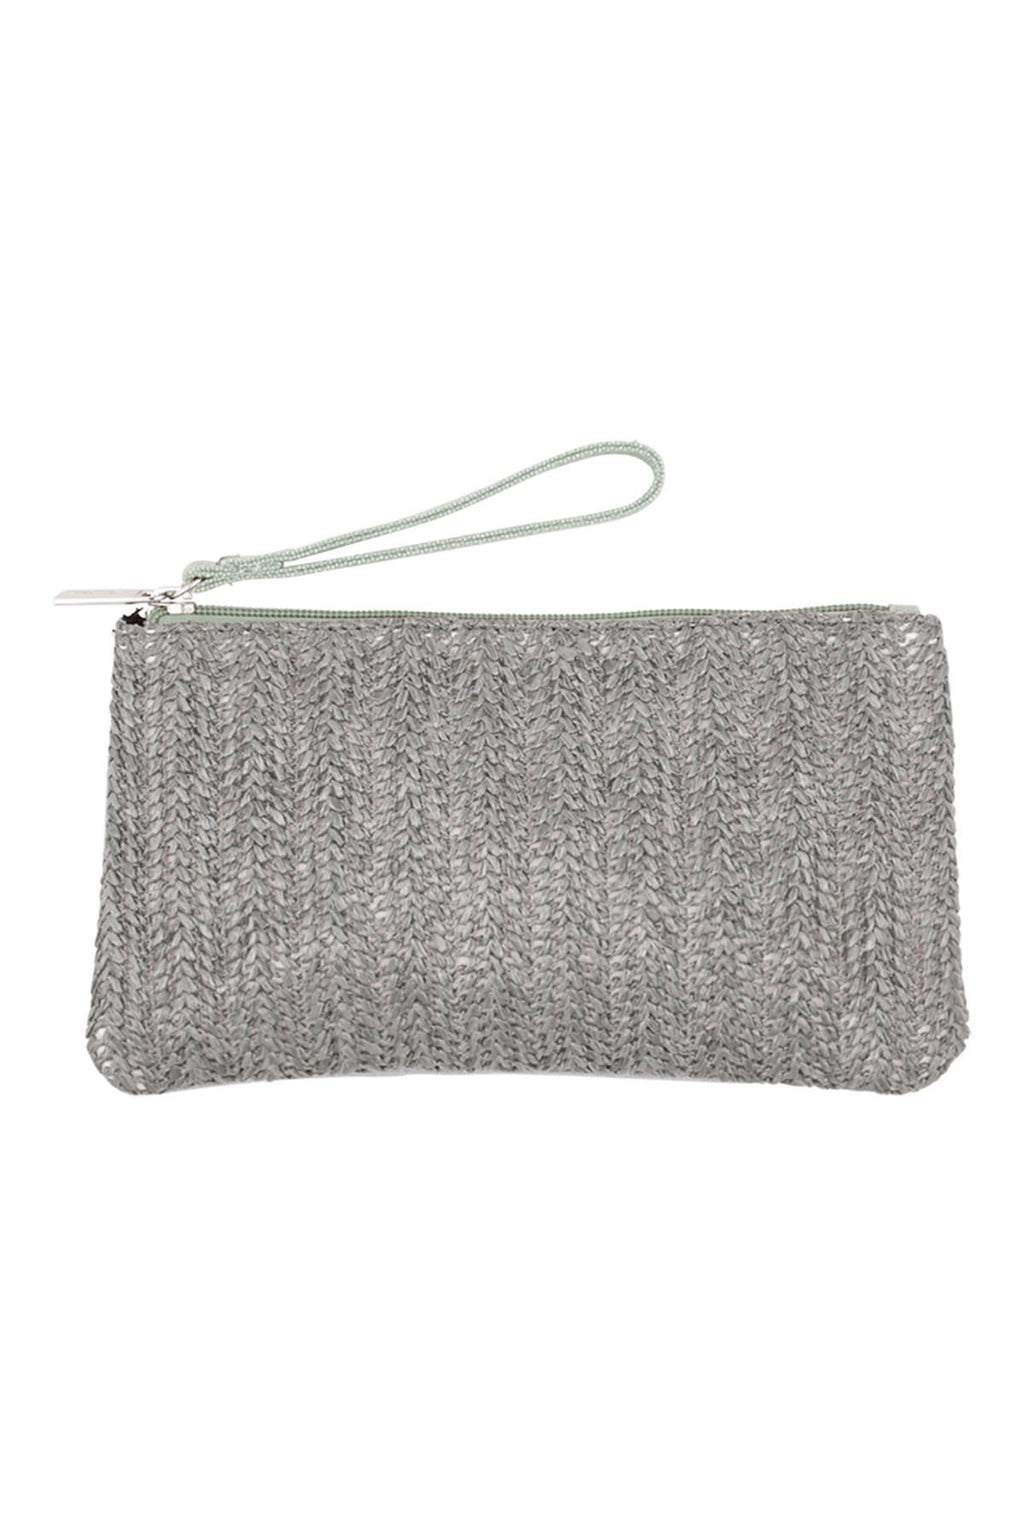 Sable Pouch - Sage - The Bohemian Corner